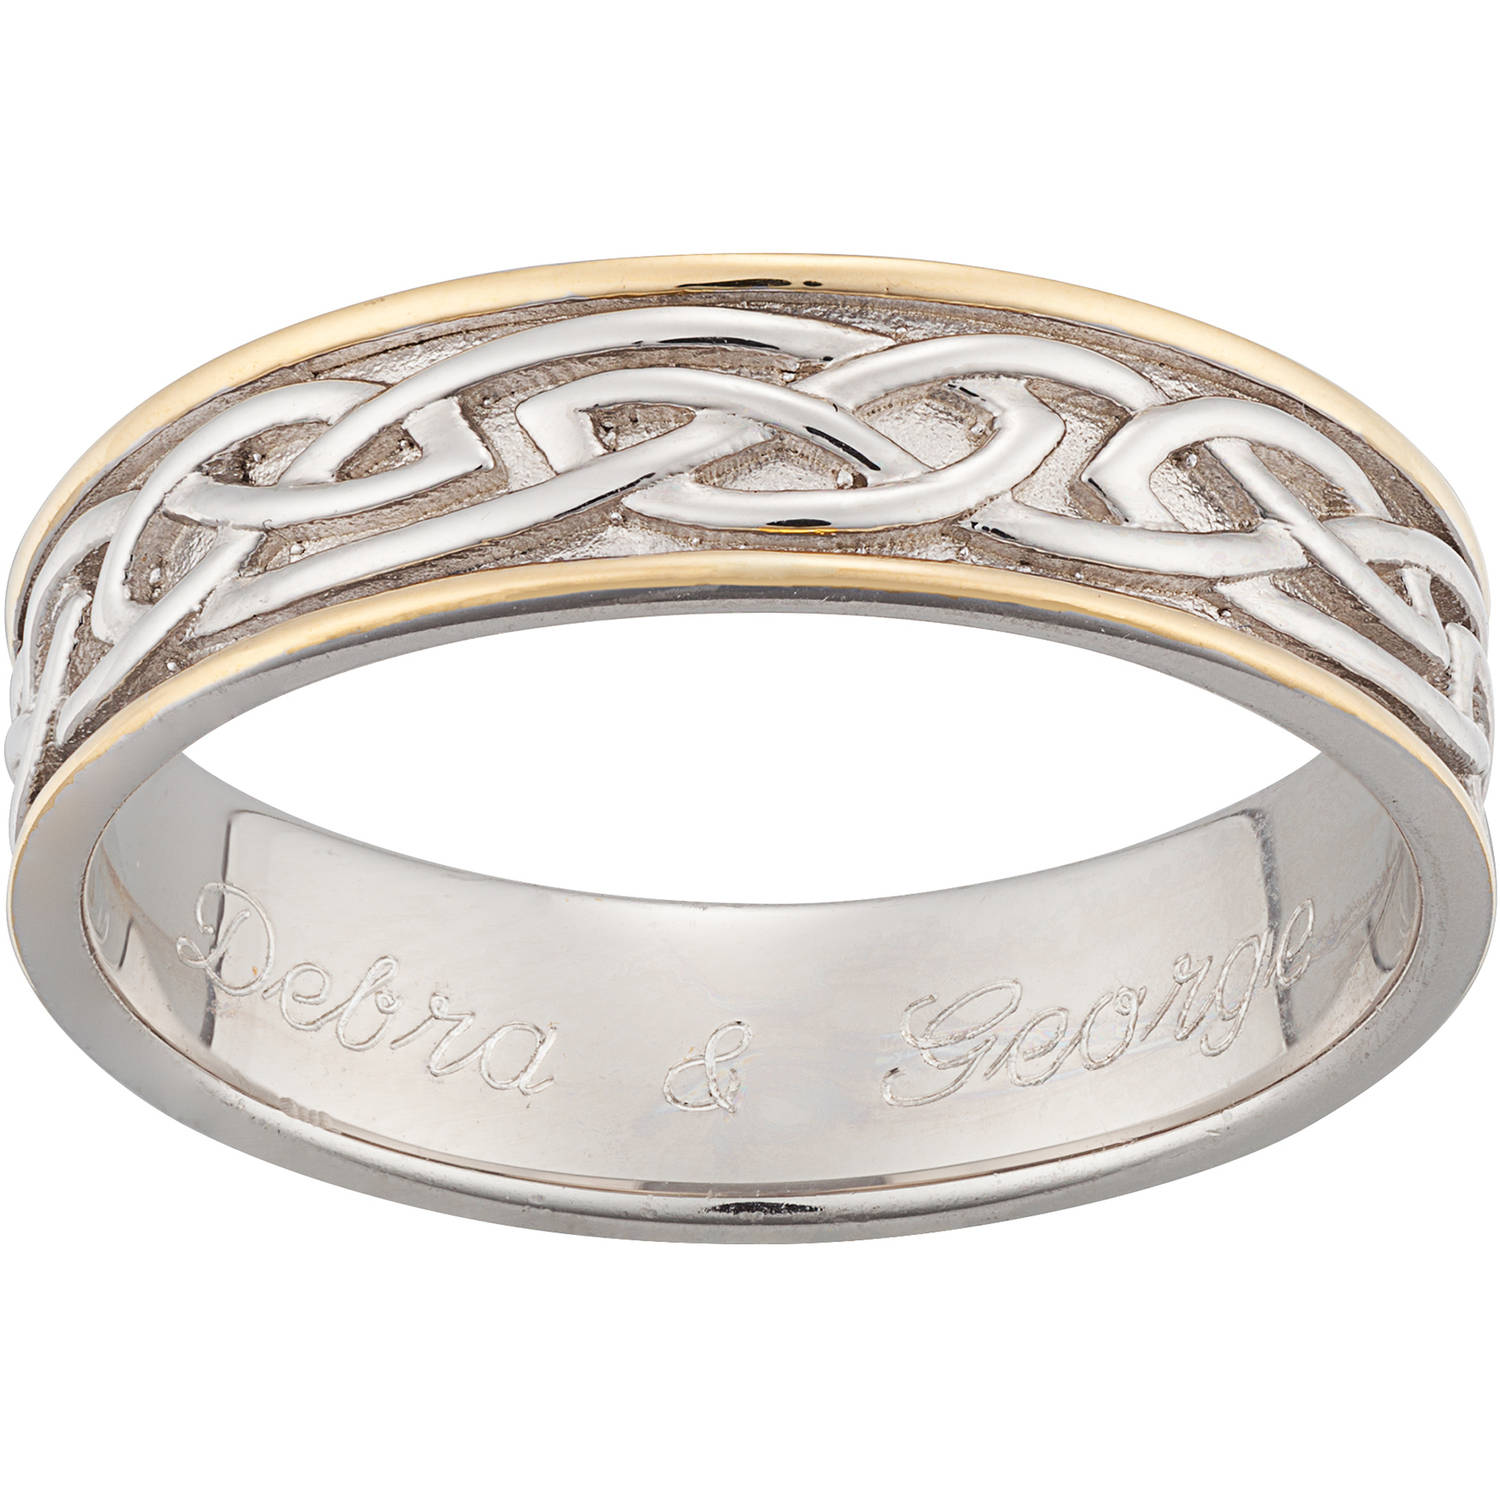 caress de personalized be inspired band rings bands engraved jewellery wedding beers